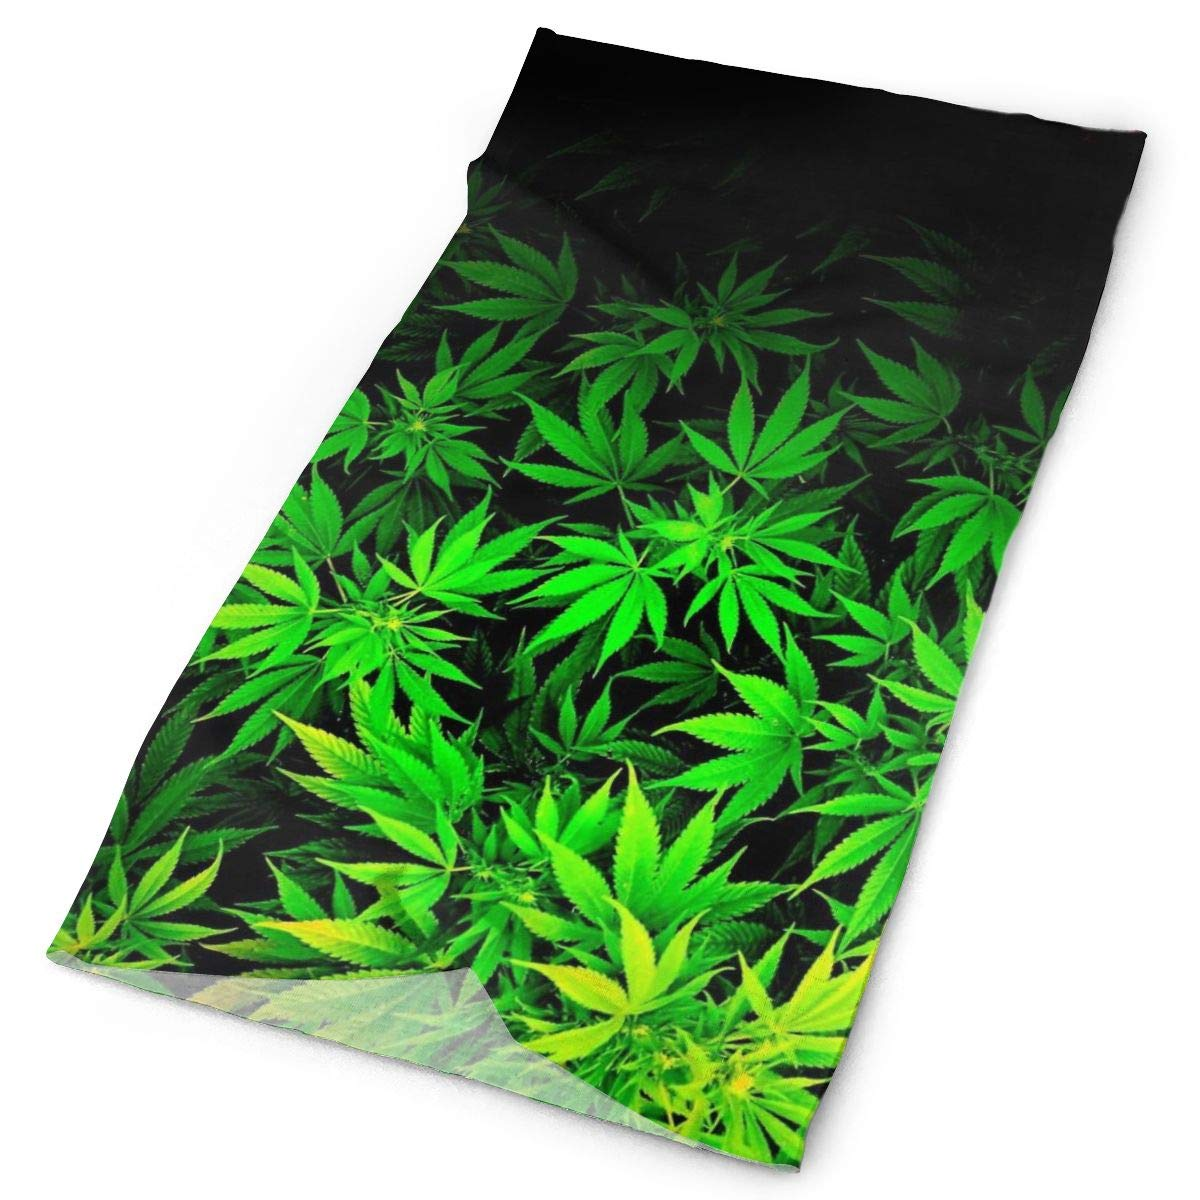 Cool Green Amazing Weed Leaves Headwear - 16 Ways To Wear Including Headband/Neck Gaiter/Bandana/Helmet Liner/Balaclava/Magic